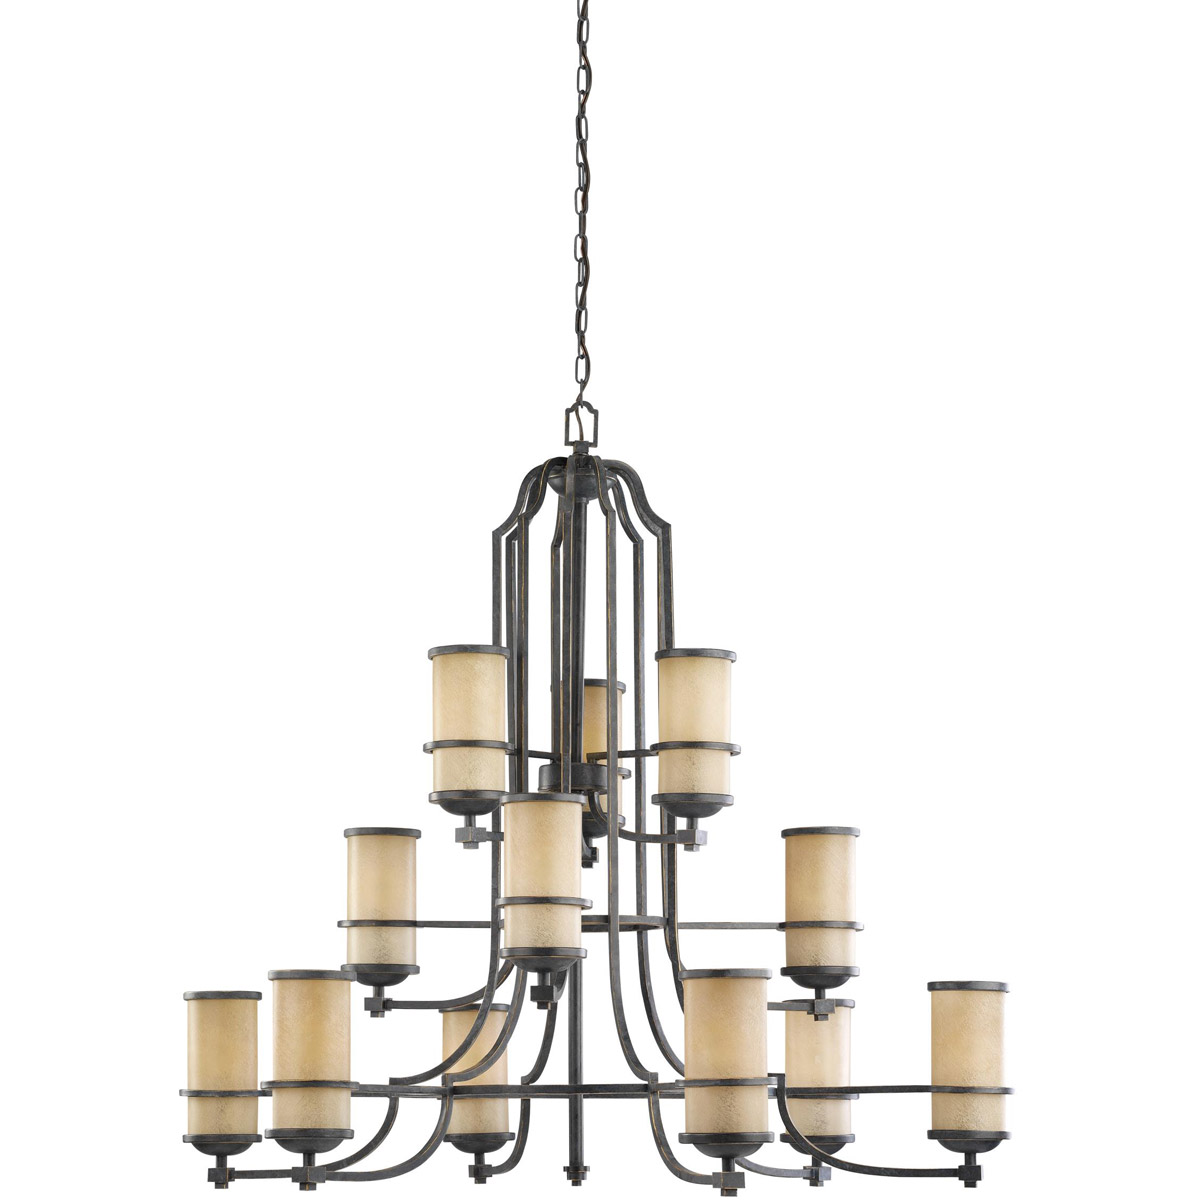 Sea Gull Lighting Roslyn 12 Light Chandelier in Flemish Bronze 31523-845 photo